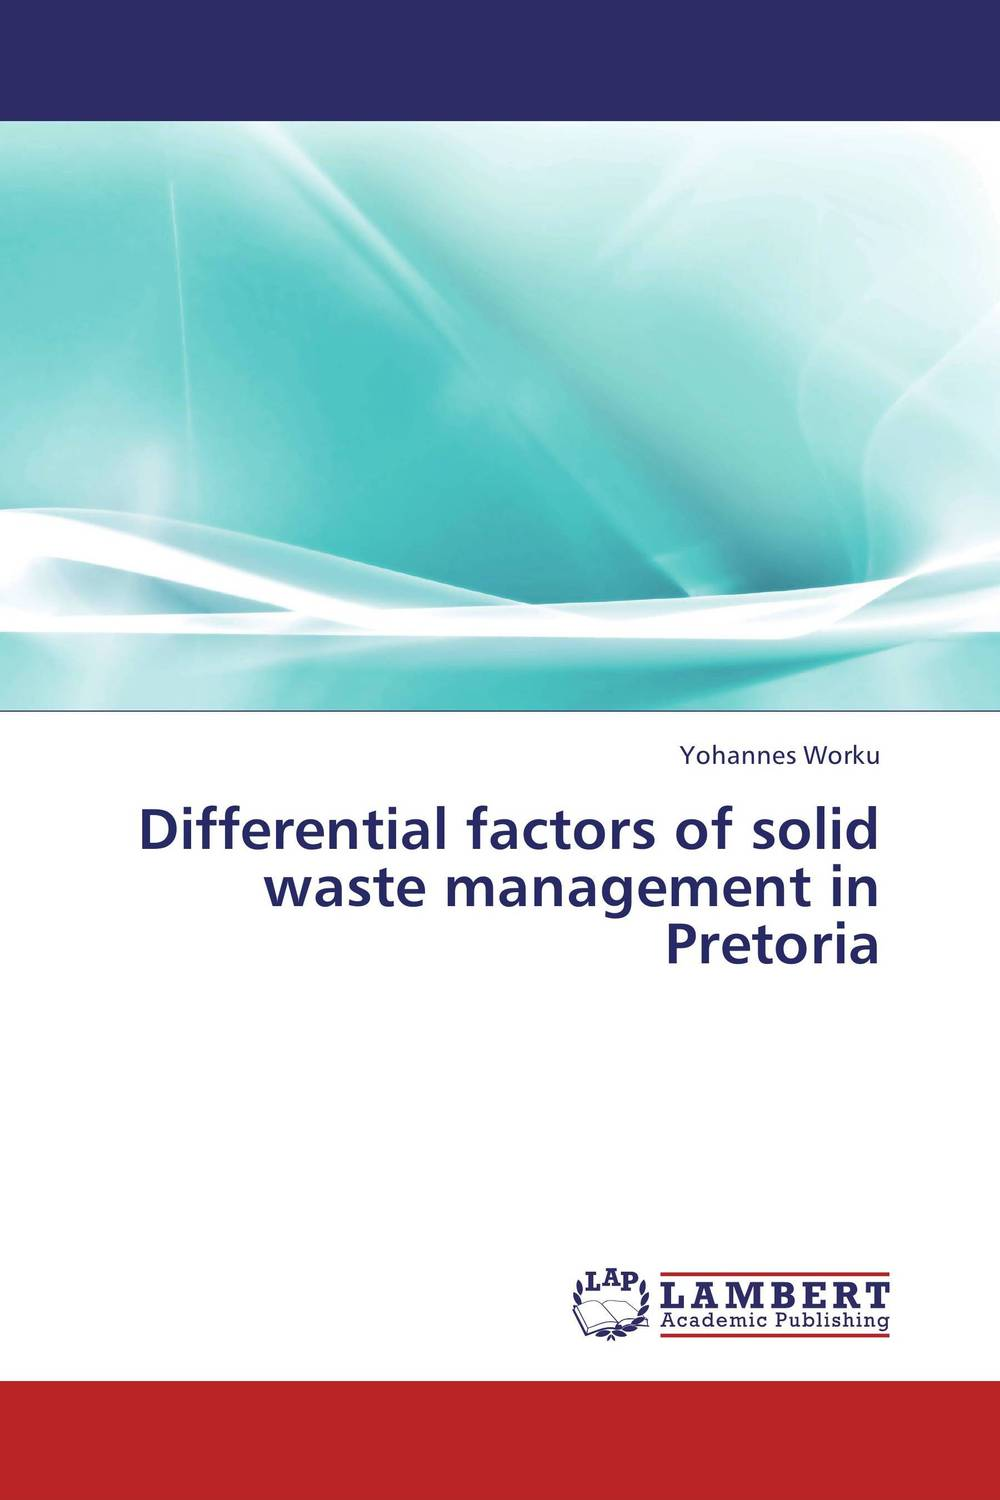 Differential factors of solid waste management in Pretoria